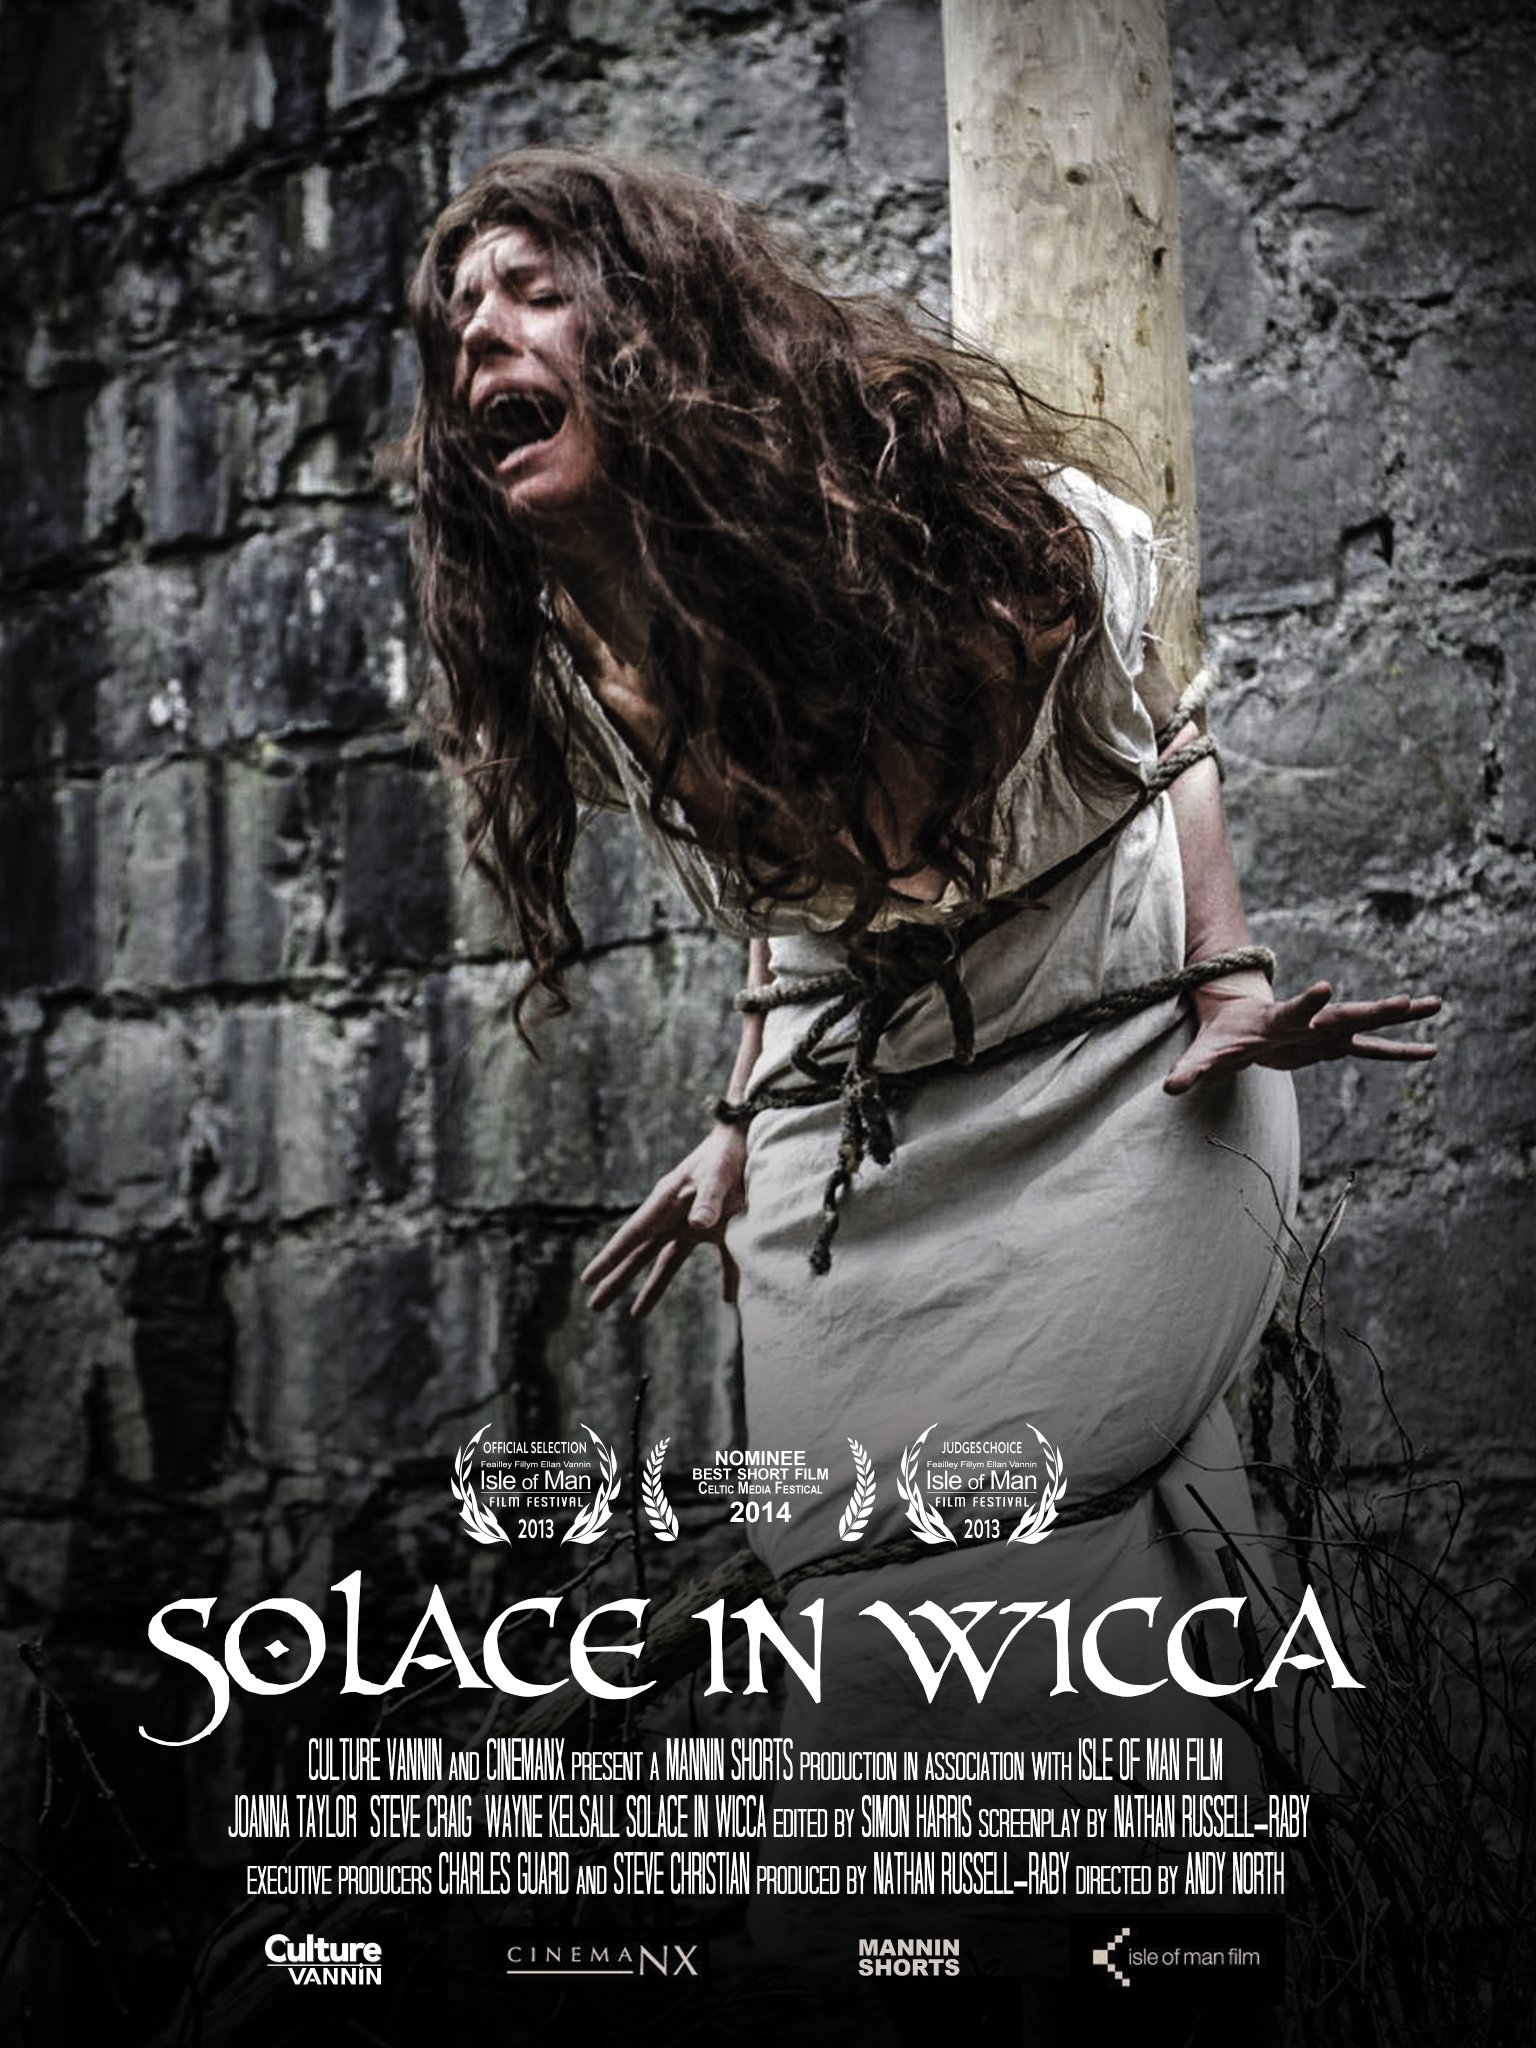 File:Solace in Wicca Poster.jpg